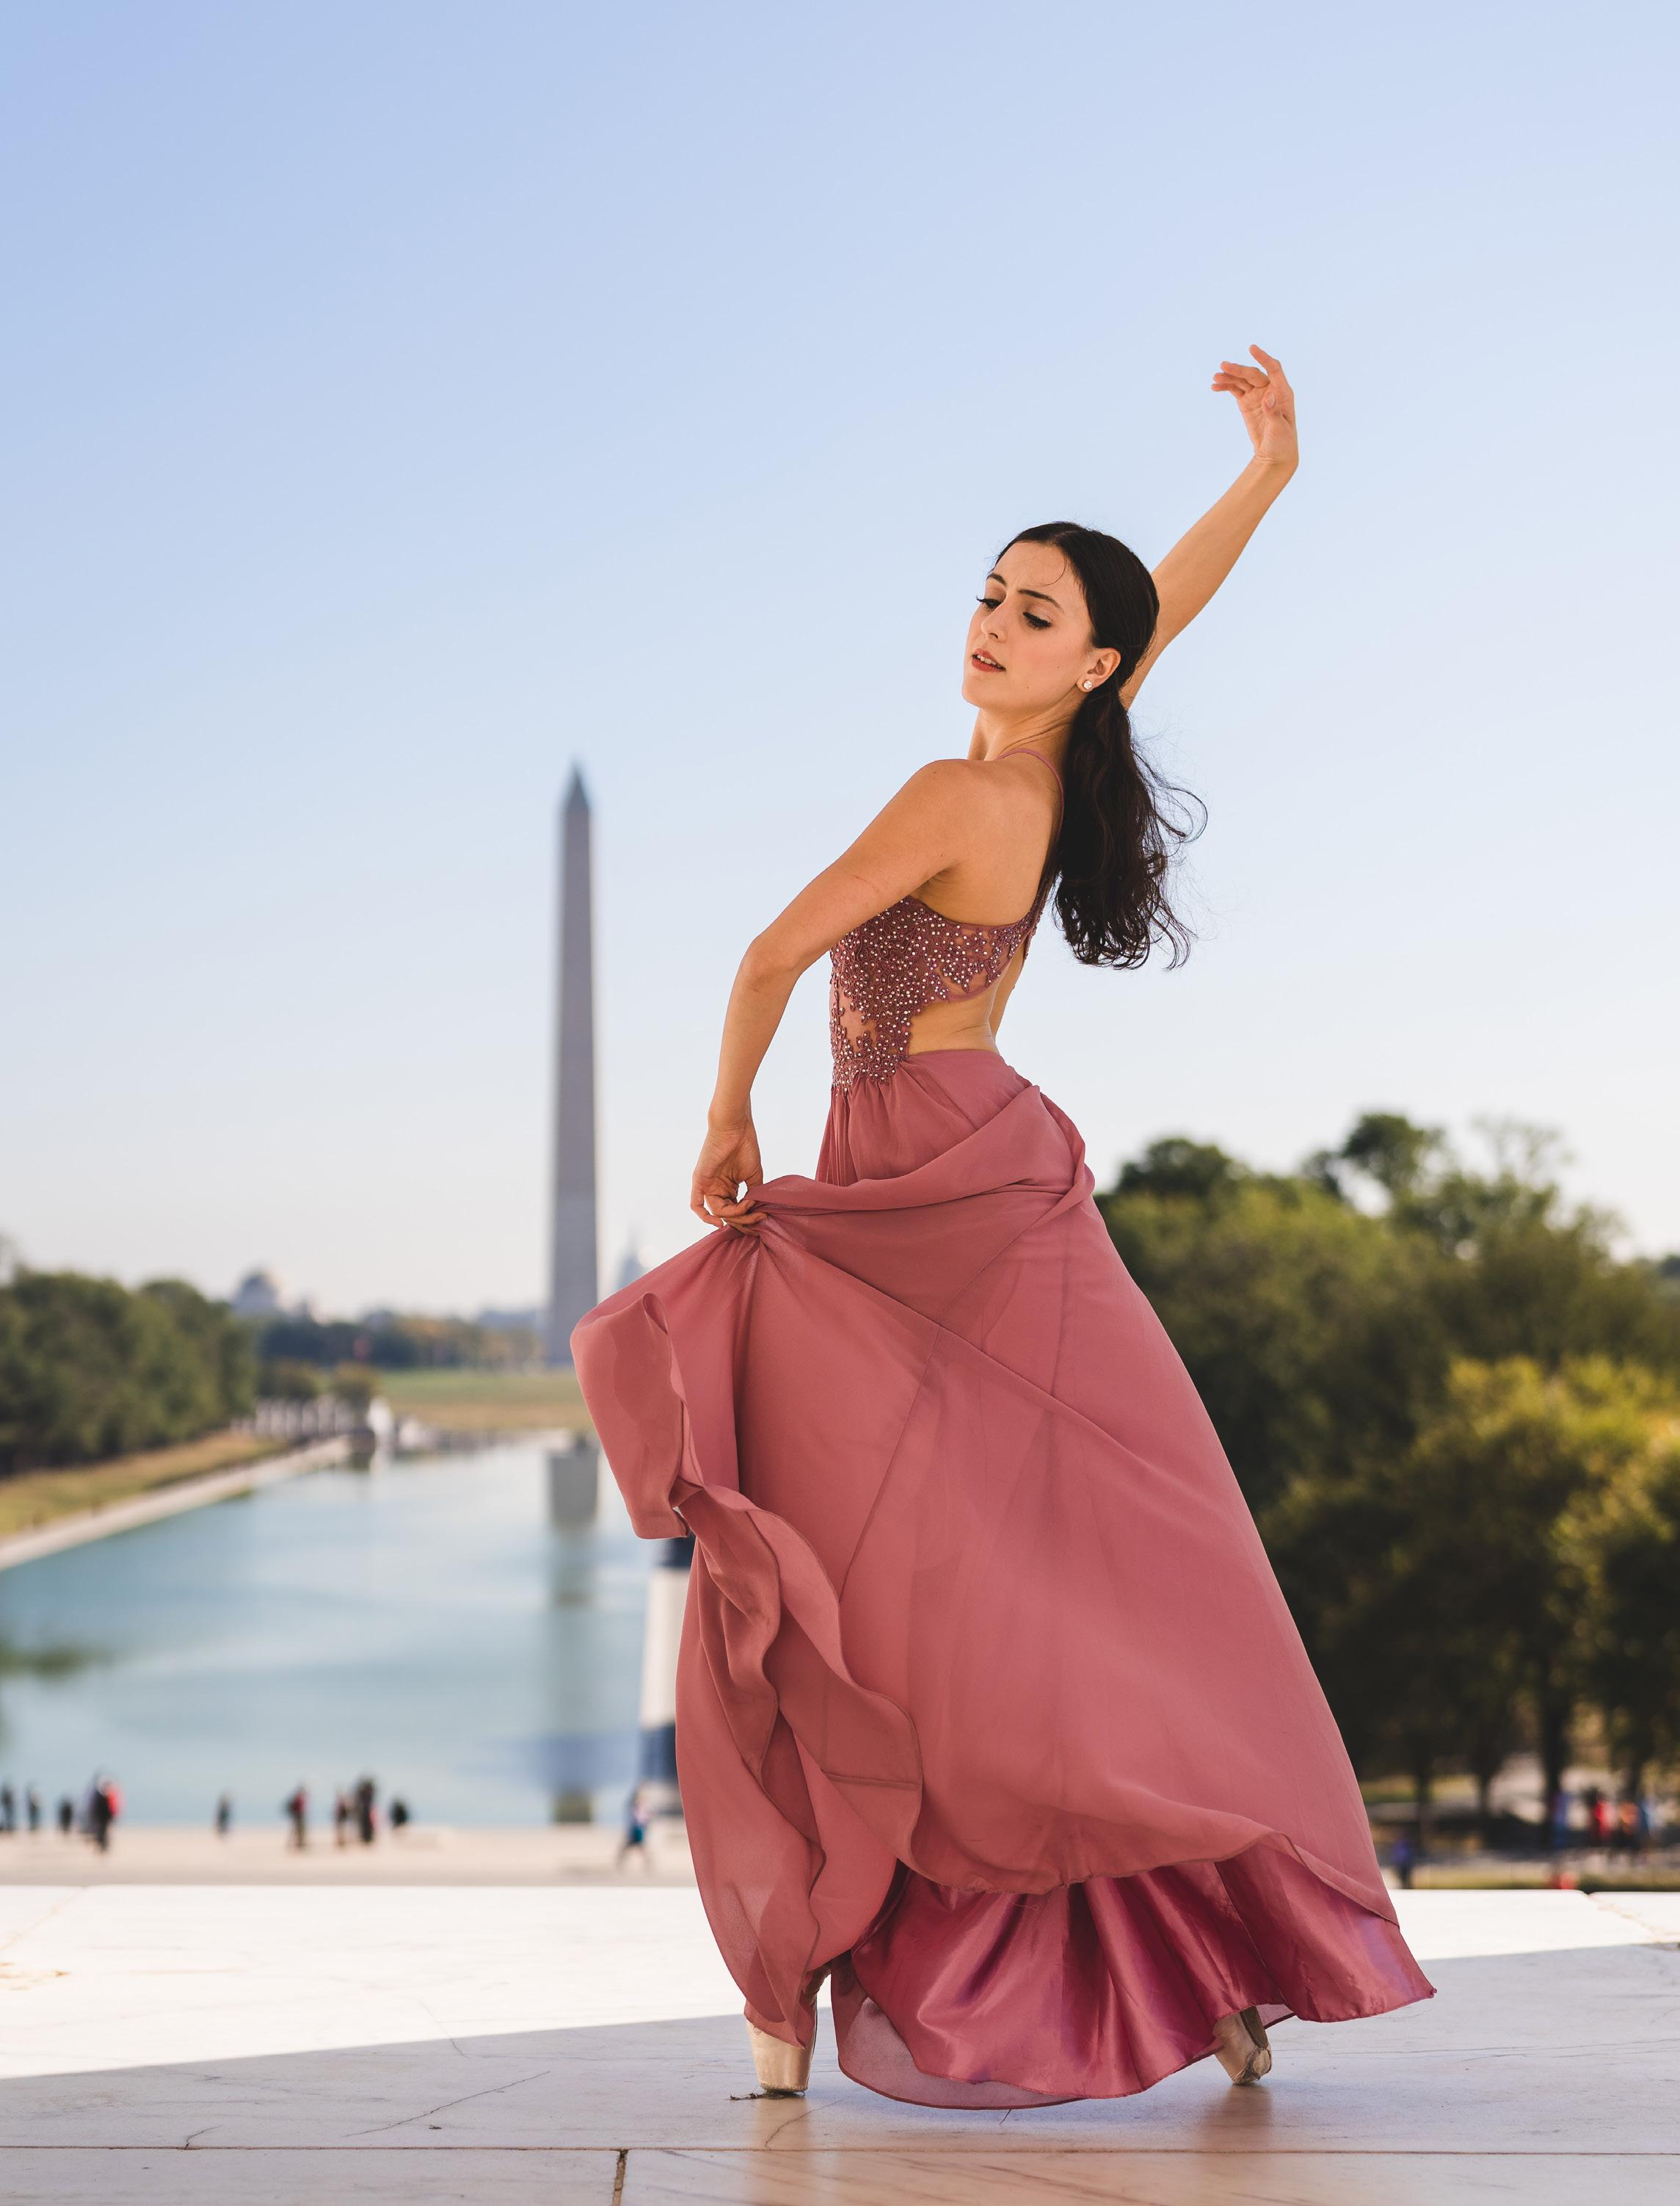 Page 40 of THE WASHINGTON BALLET JETÉ SOCIETY PRESENTS: KATHERINE BARKMAN